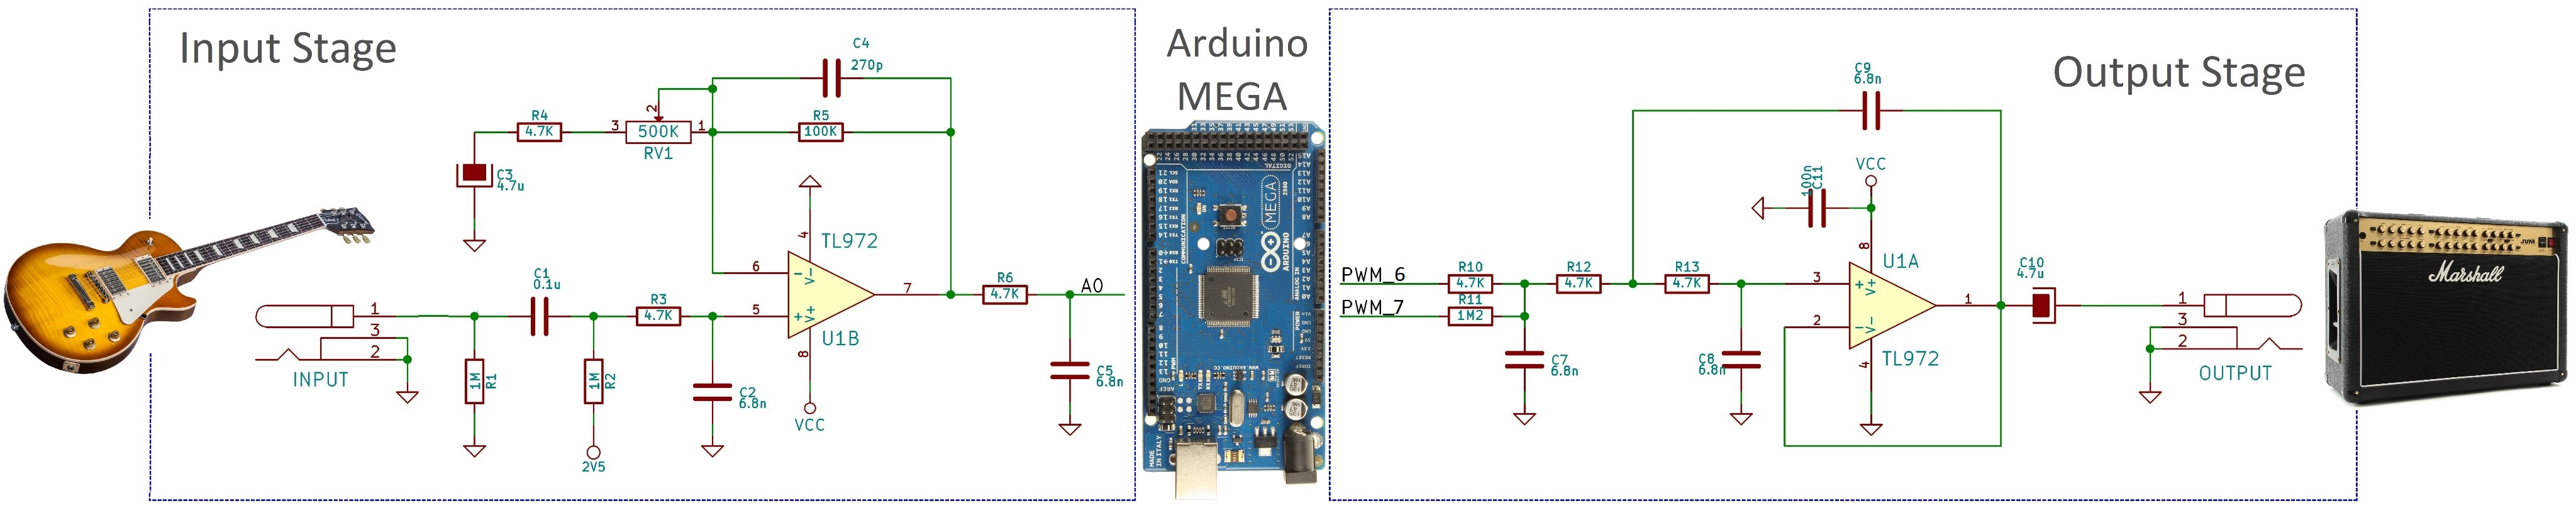 Electrosmash Pedalshield Mega Arduino Guitar Pedal Way Switch Wiring Diagram Pinterest Stages Small